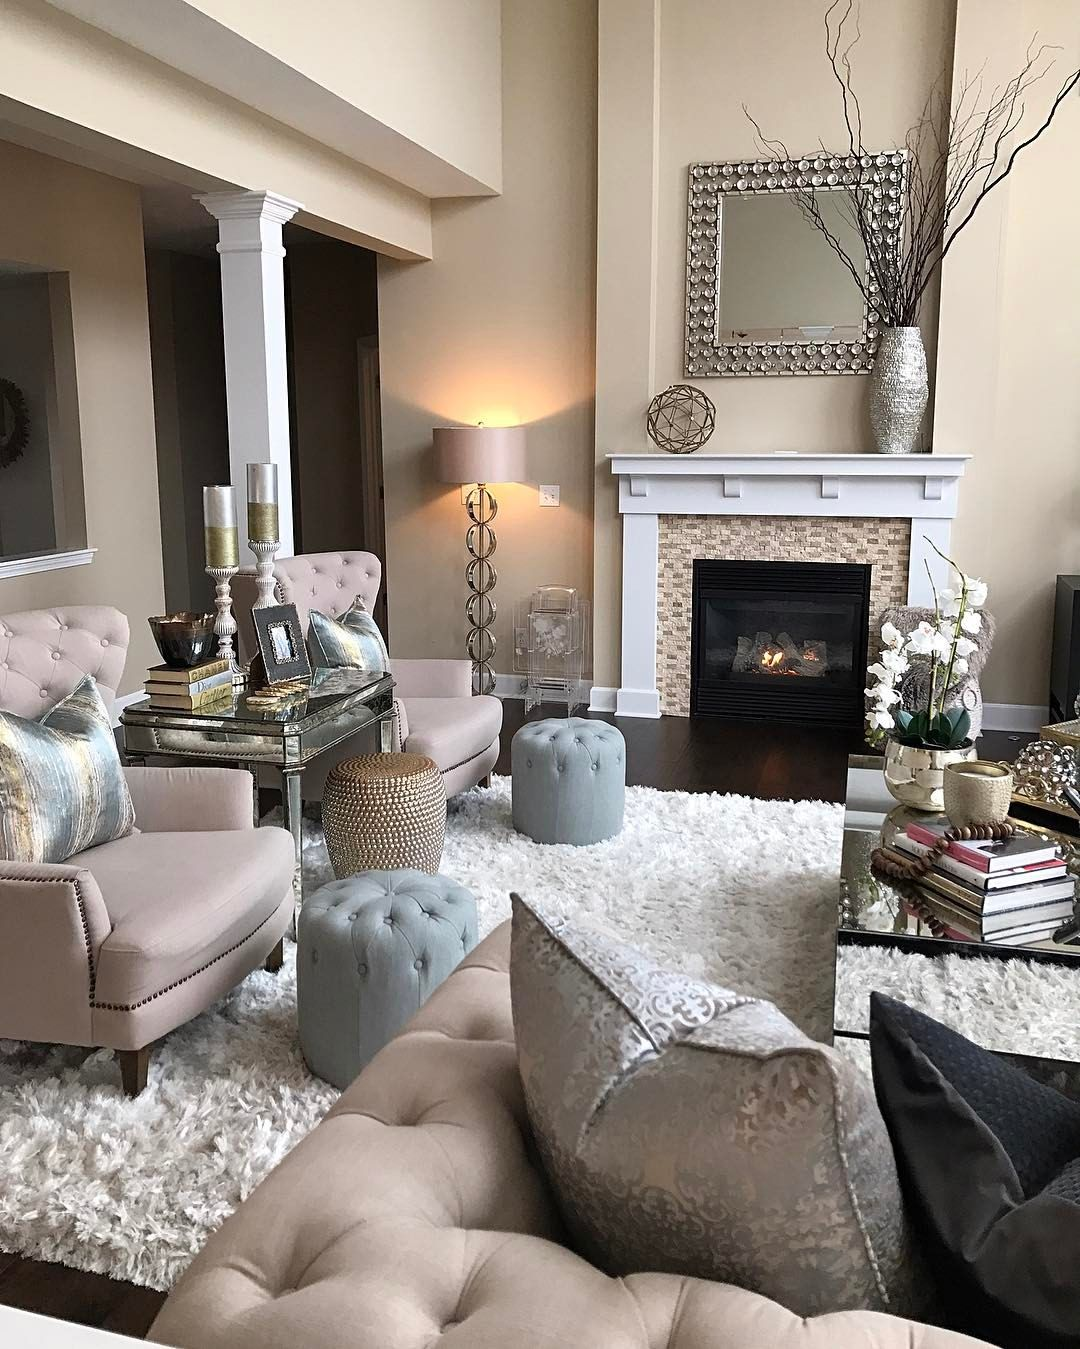 living room decorating ideas colors schemes grey black and purple pin by jeanie hcota on color pinterest home decor create the ultimate space to relax in with our plus other homeware picks browse through images get design